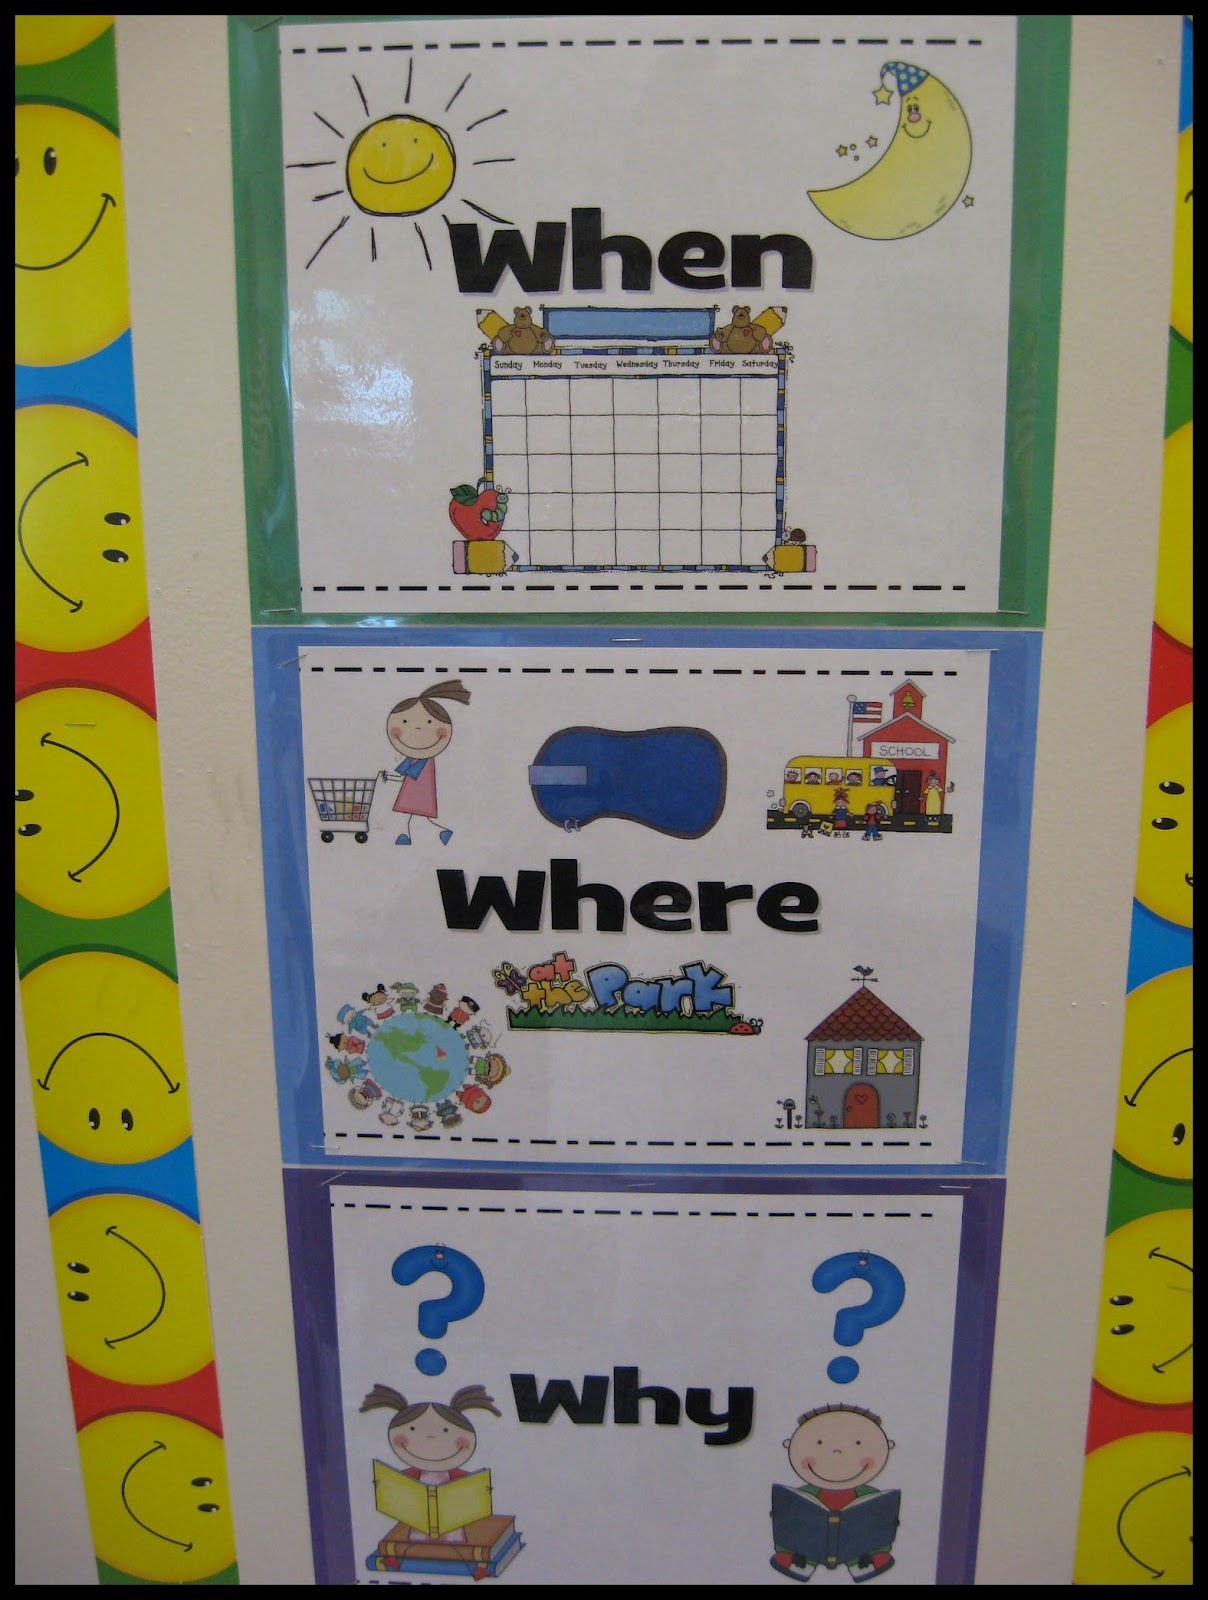 kindergarten writing process You're familiar with the writing process, right most of us have heard of pre- writing, writing, revising, editing and publishing what i love about the workshop approach is that it allows each child moves through the process at his own pace, at his own developmental level when you teach kindergarten, the.